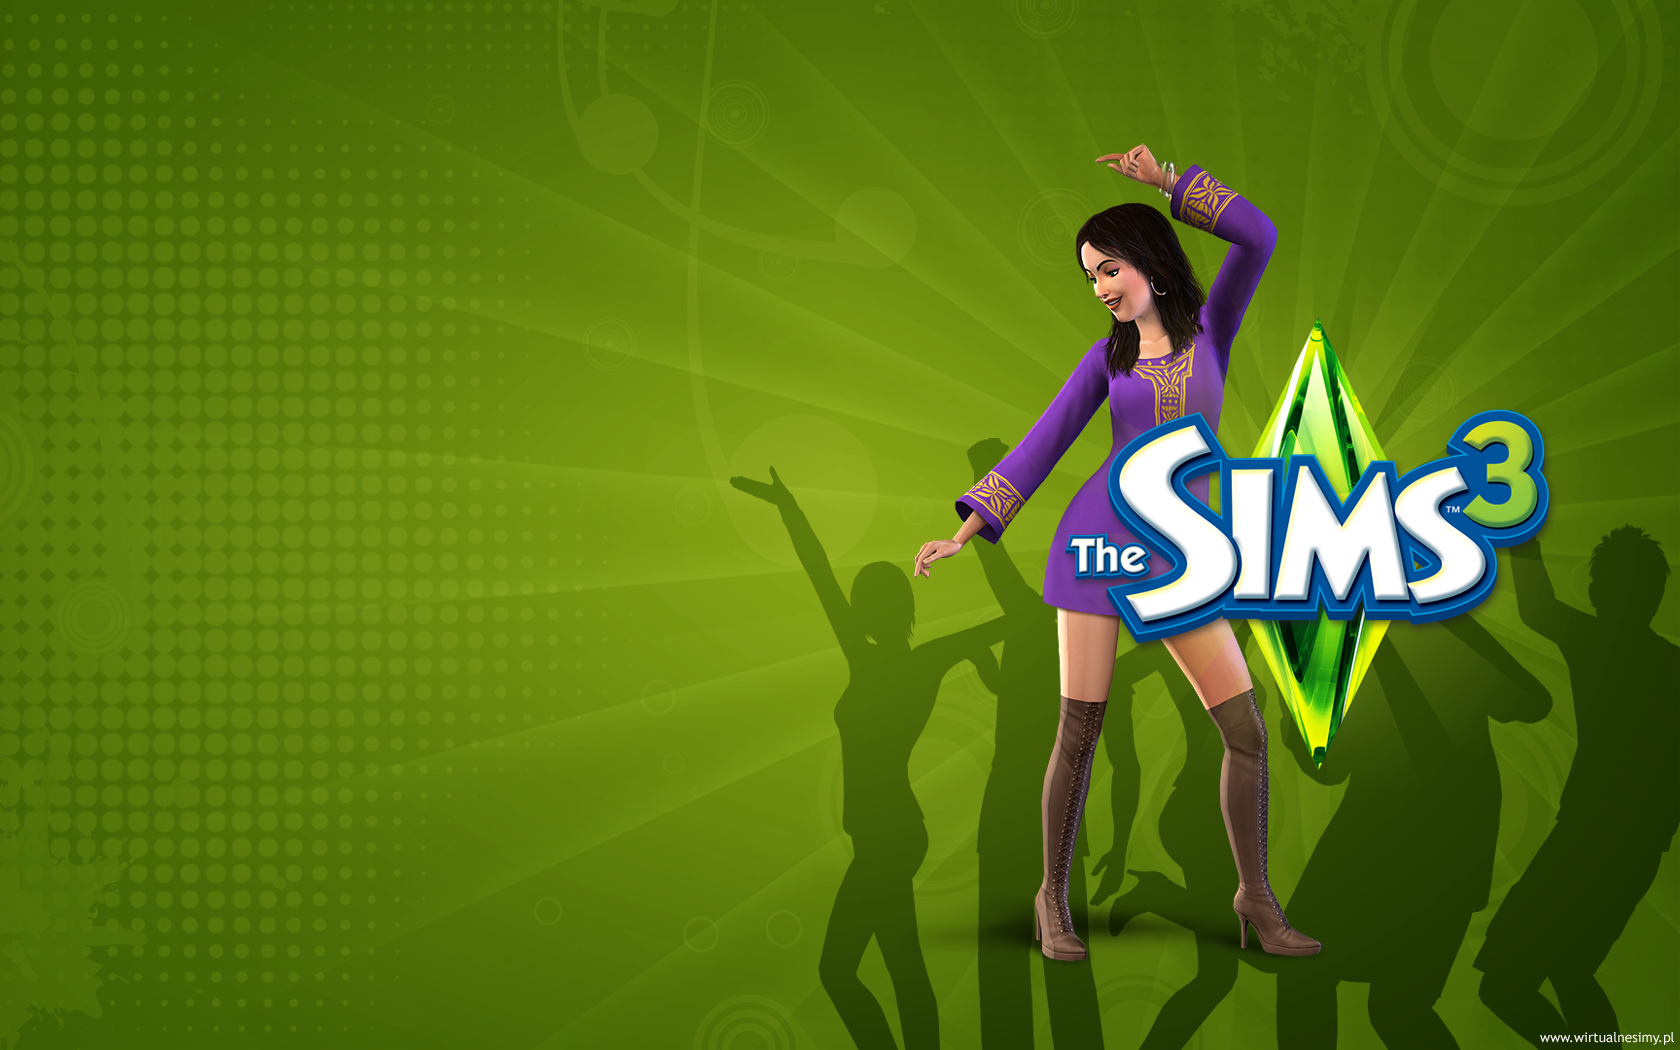 sims 3 wallpaper 19625500 fanpop fanclubs tapety the sims 3 wallpaper 1680x1050